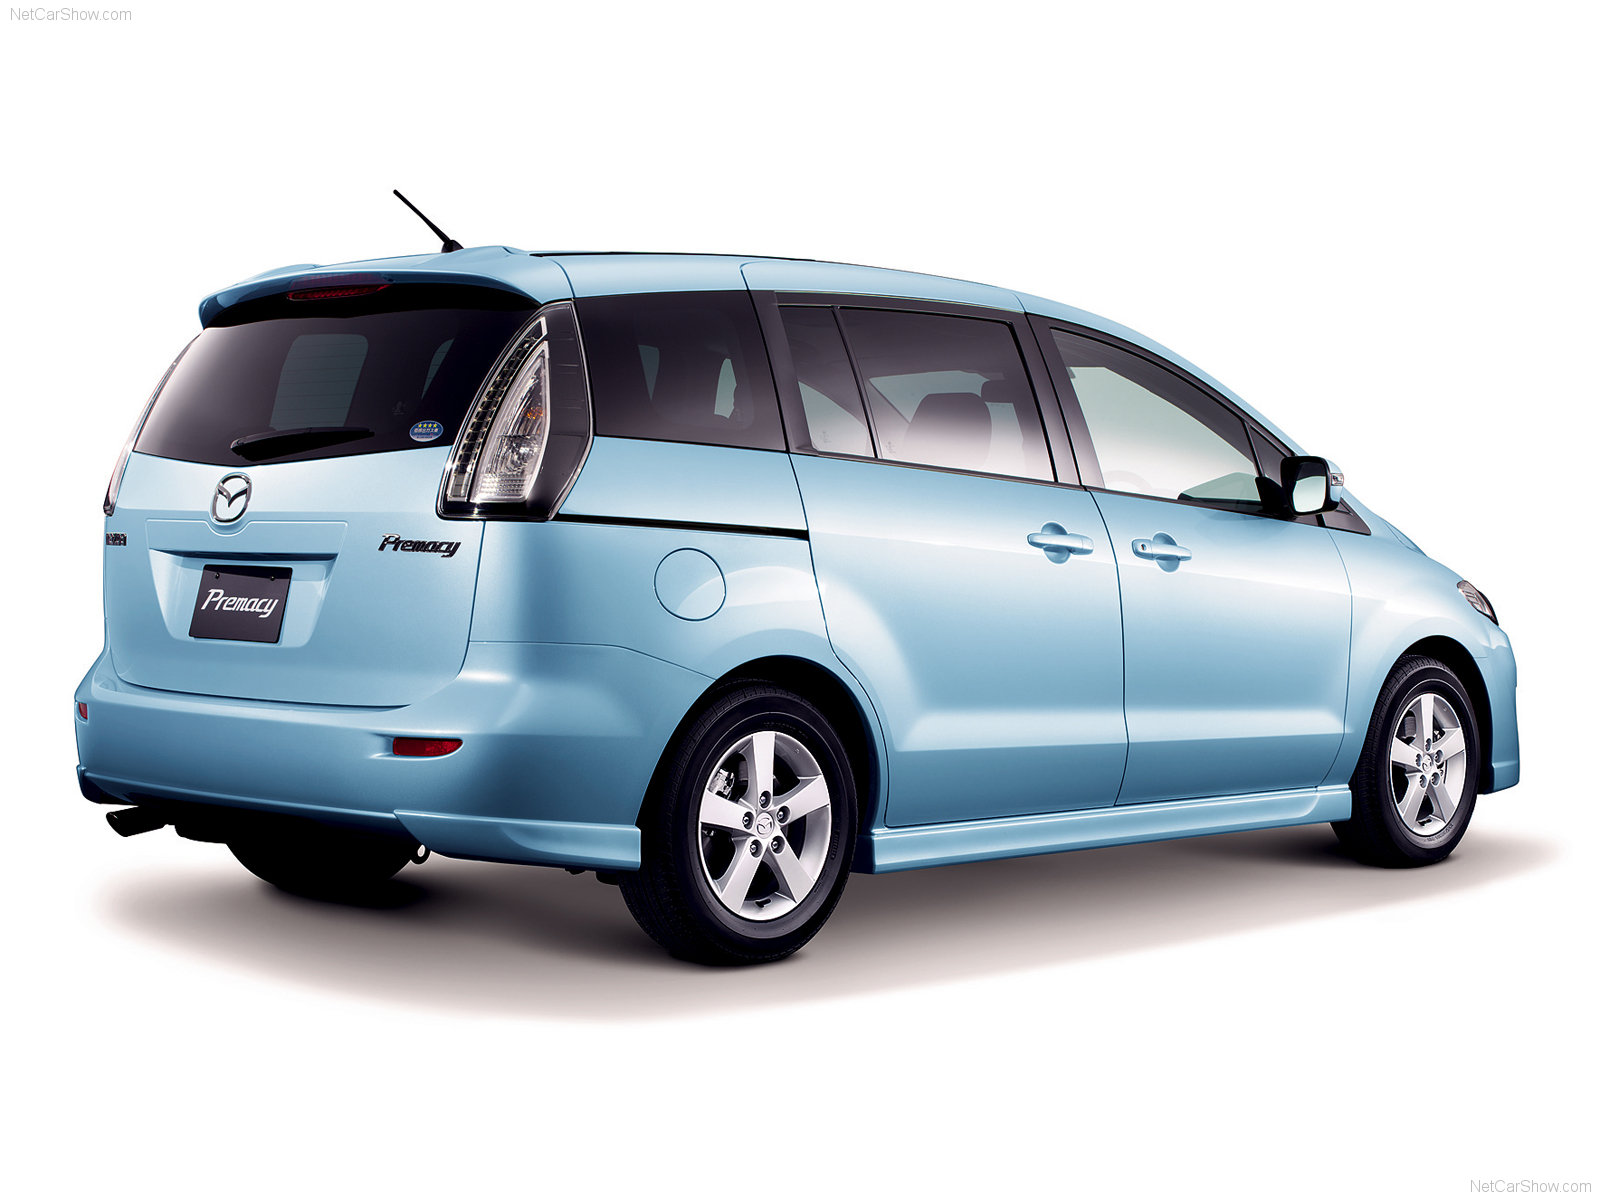 mazda premacy photos photogallery with 10 pics. Black Bedroom Furniture Sets. Home Design Ideas